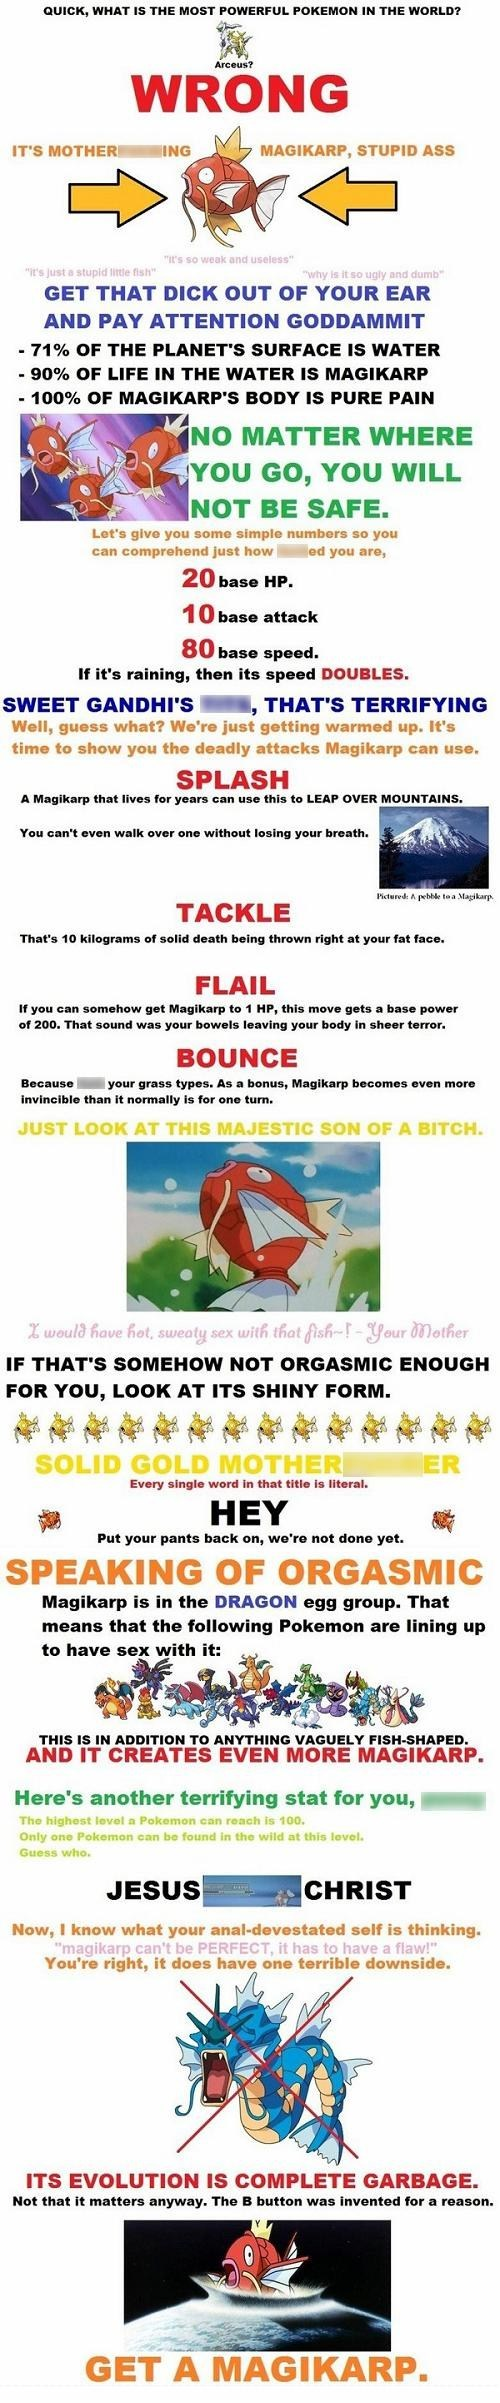 Magikarp Salesman is Doing You a Favor